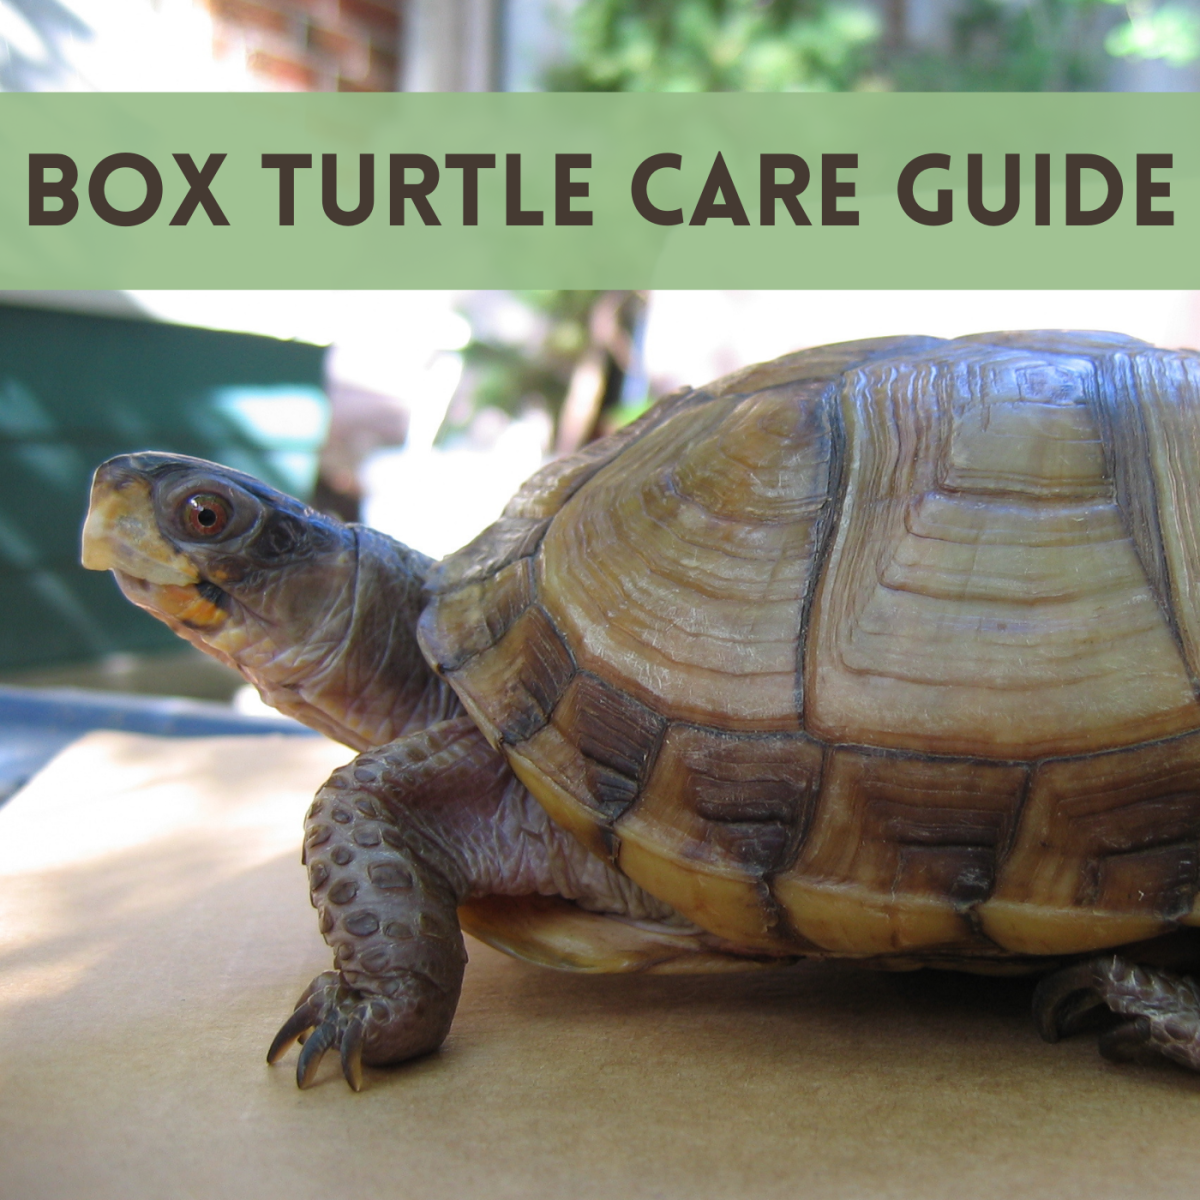 How to Properly House and Care for Pet Box Turtles